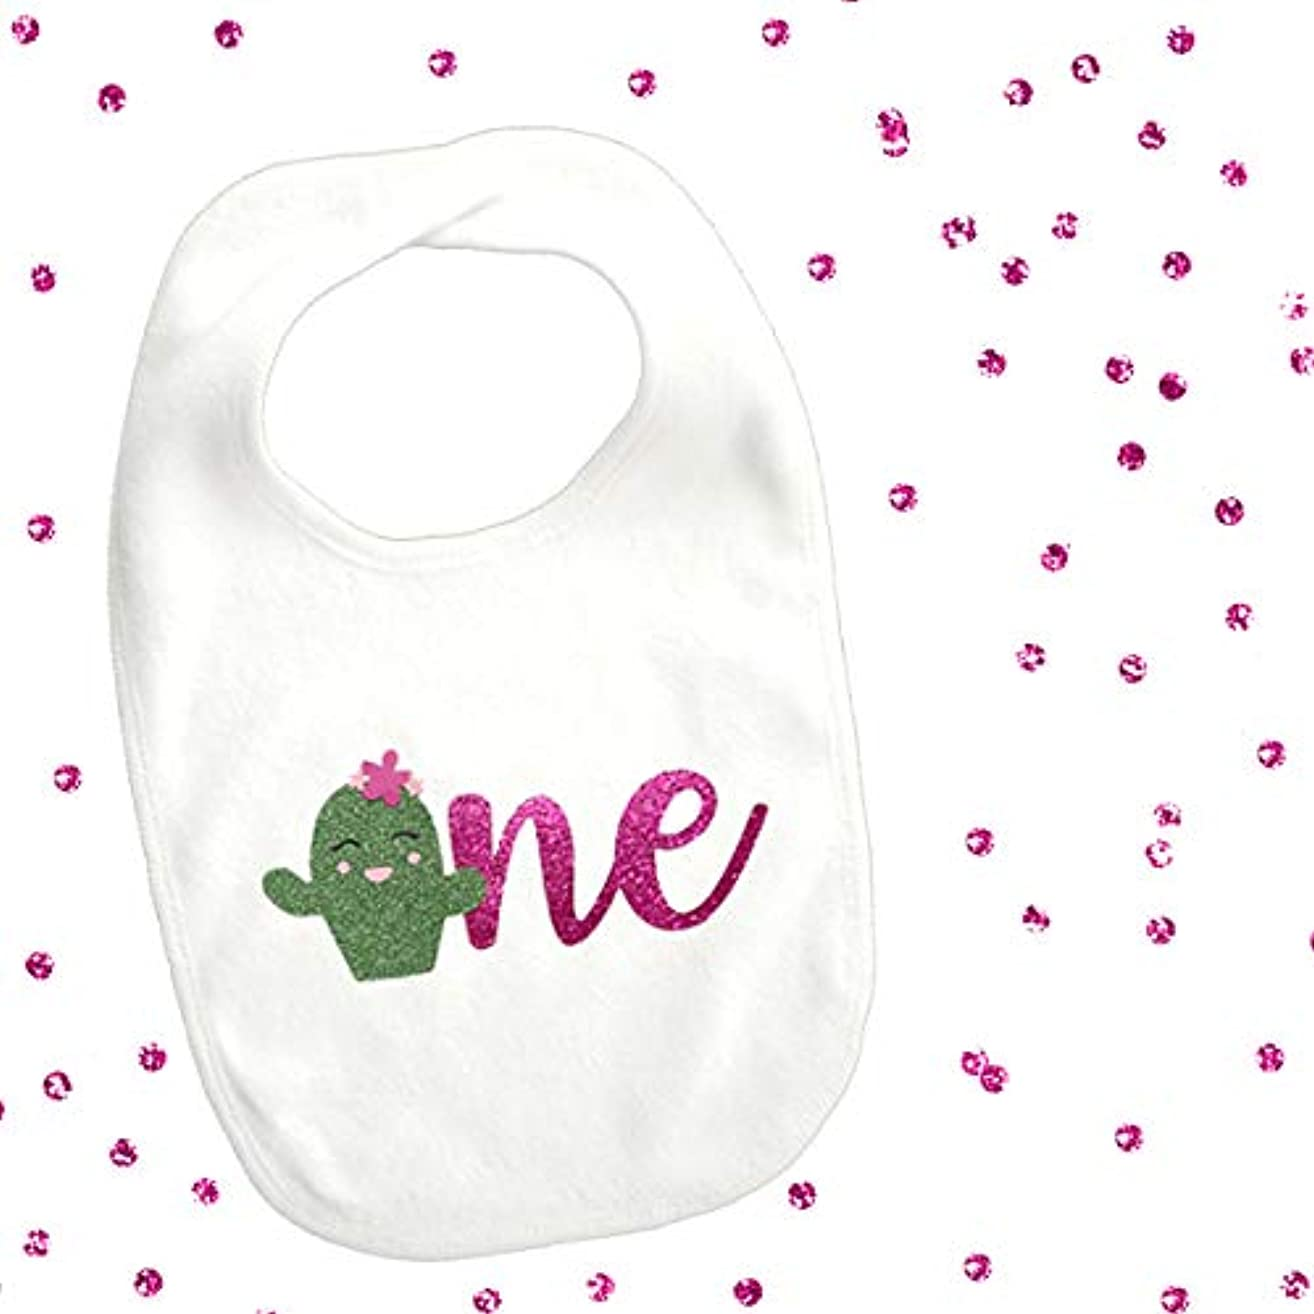 1 piece one cute flower cactus bib toddler girl for first birthday gift cake smash photo prop fiesta cinco de mayo party theme